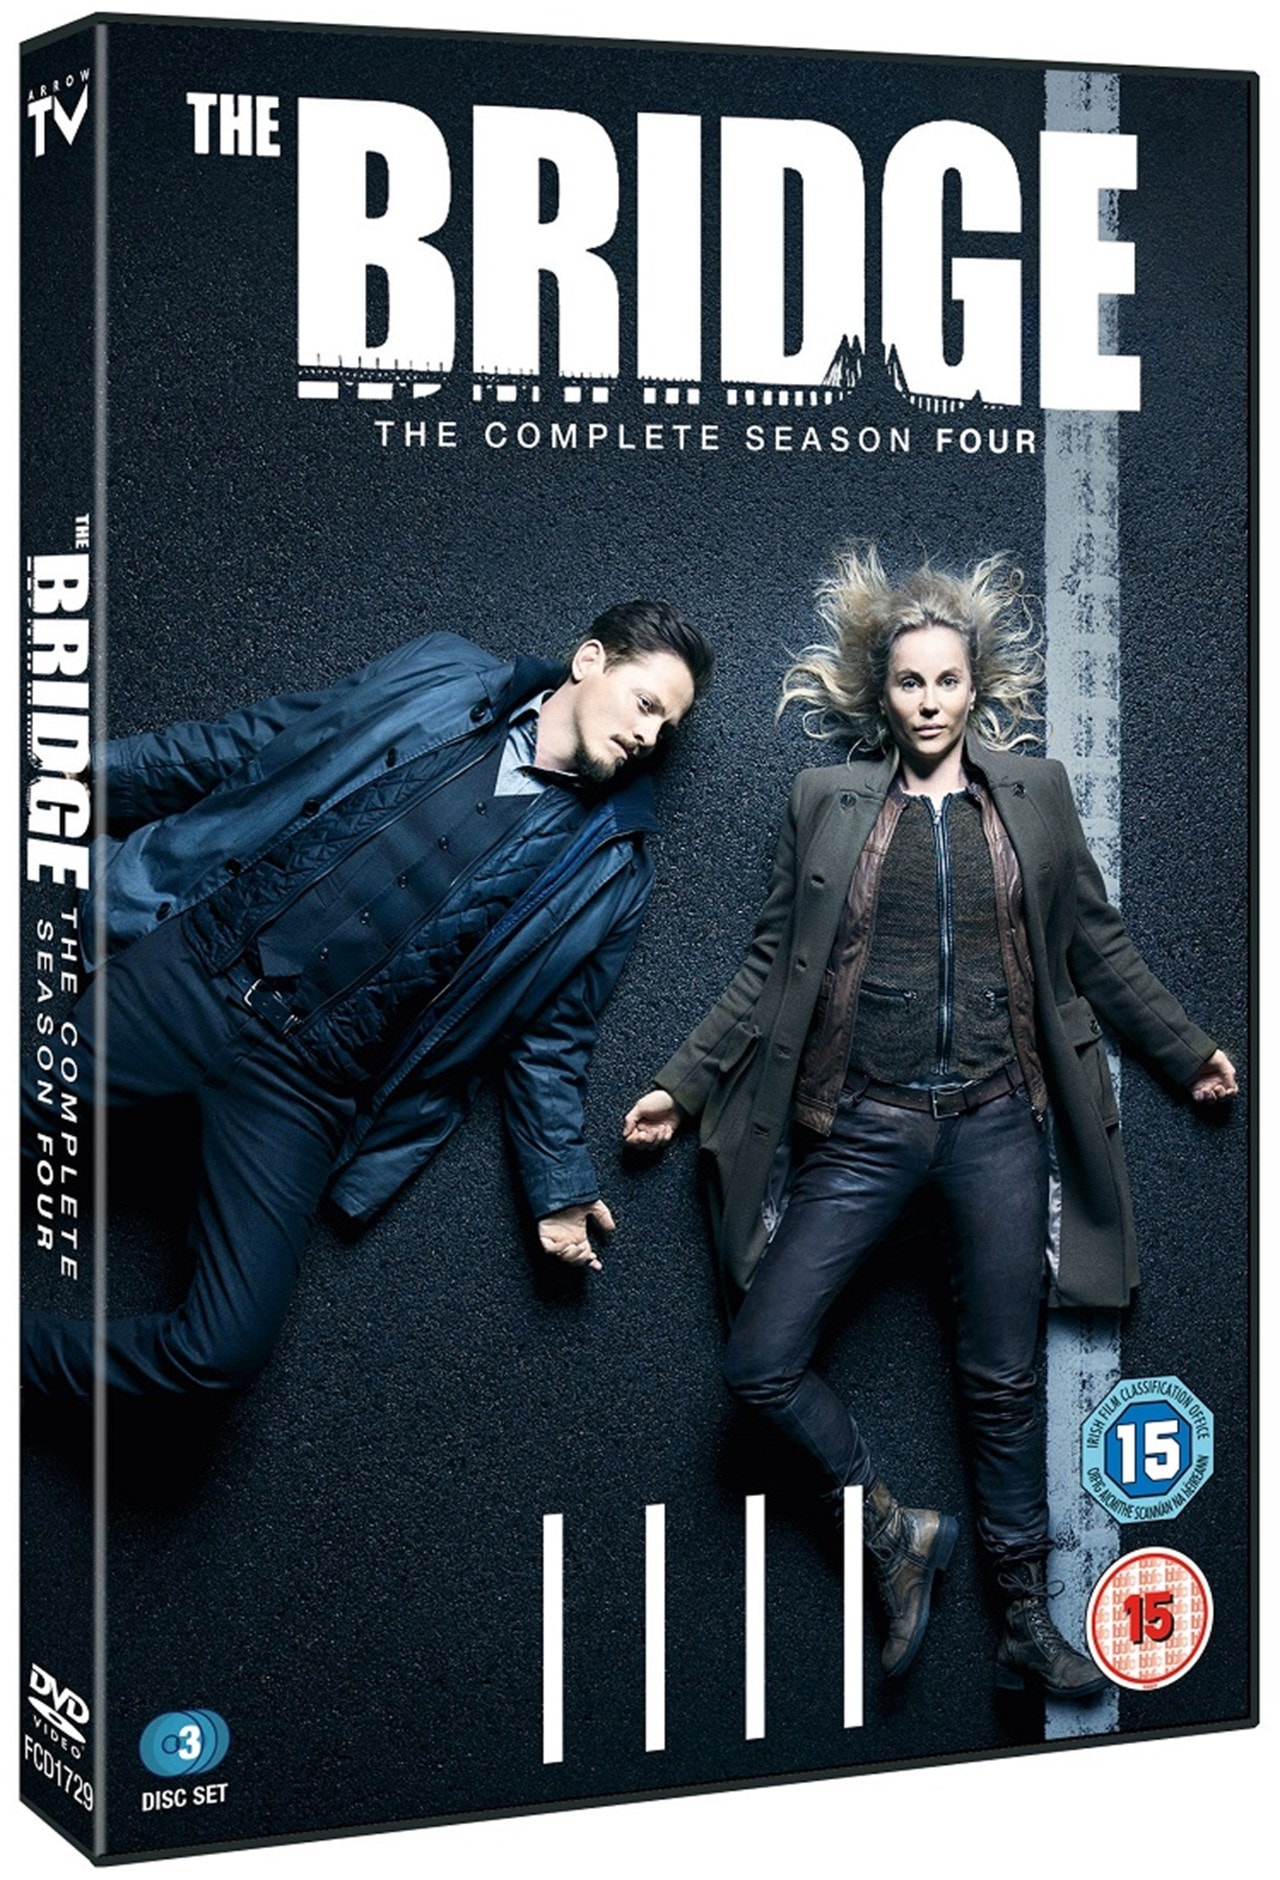 The Bridge: The Complete Season Four - 2